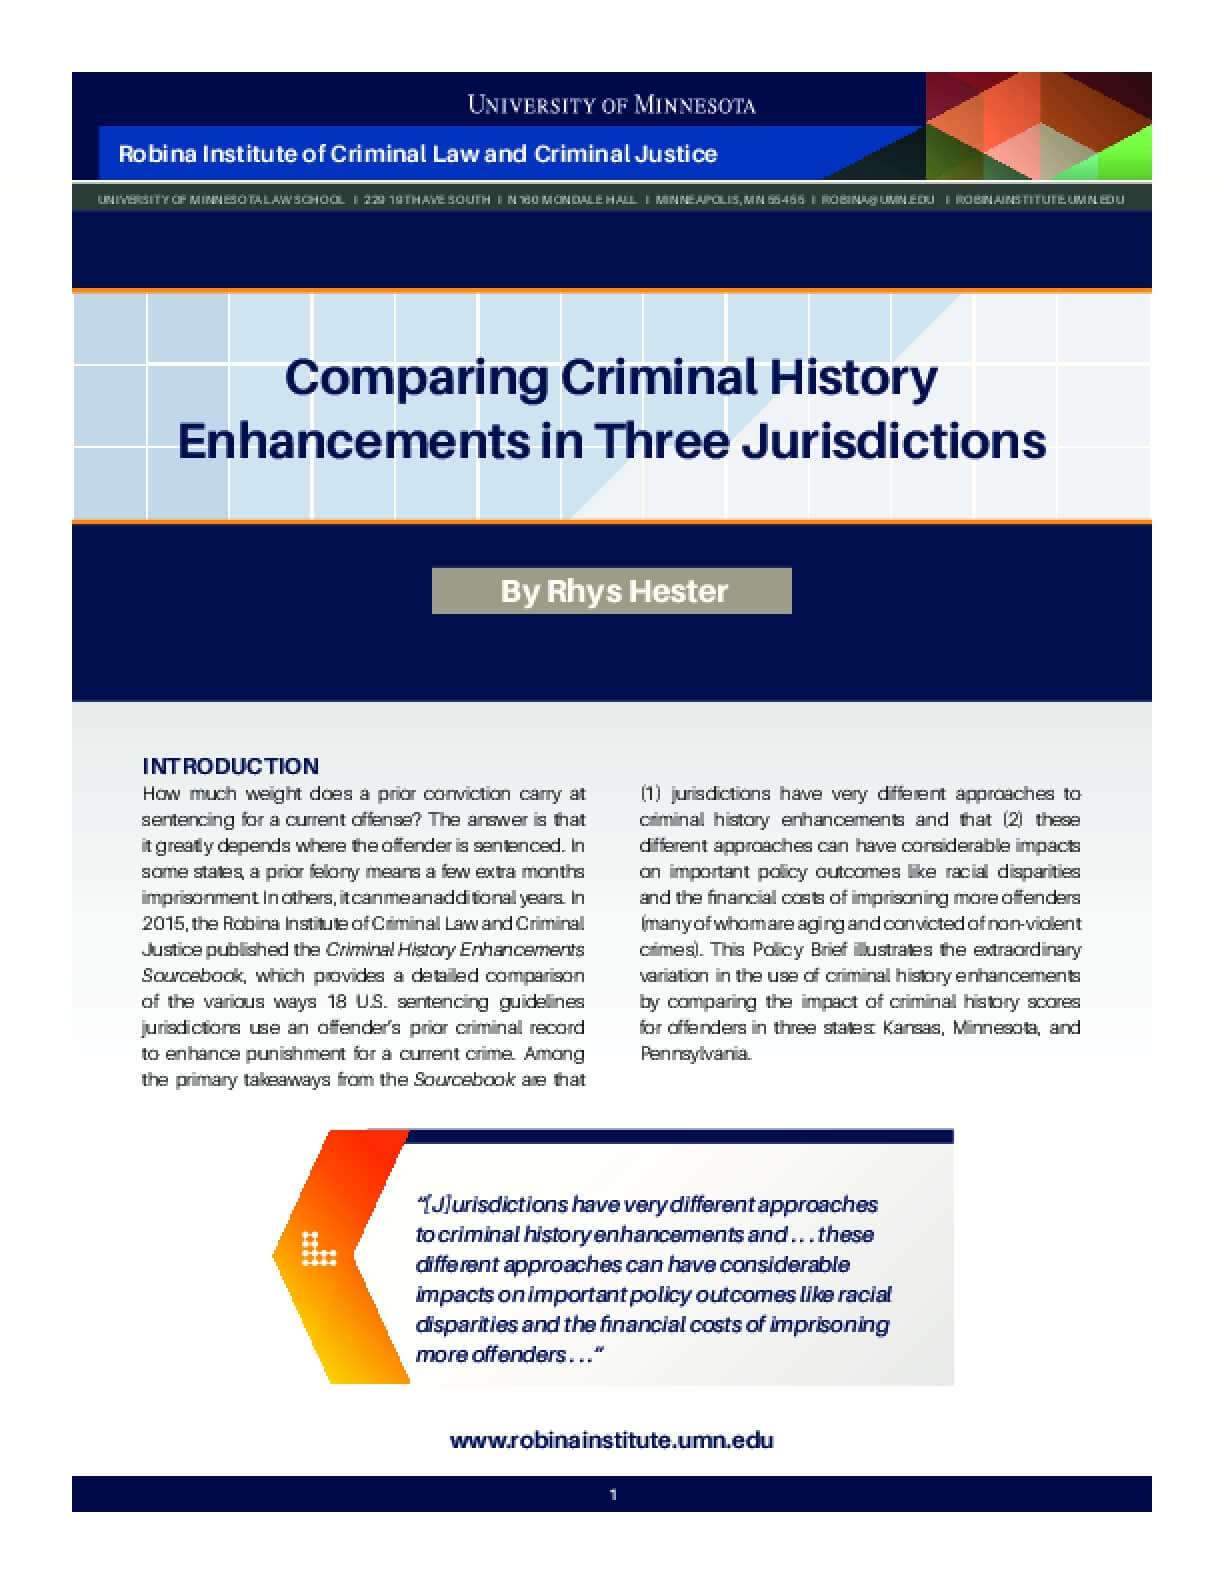 Comparing Criminal History Enhancements in Three Jurisdictions